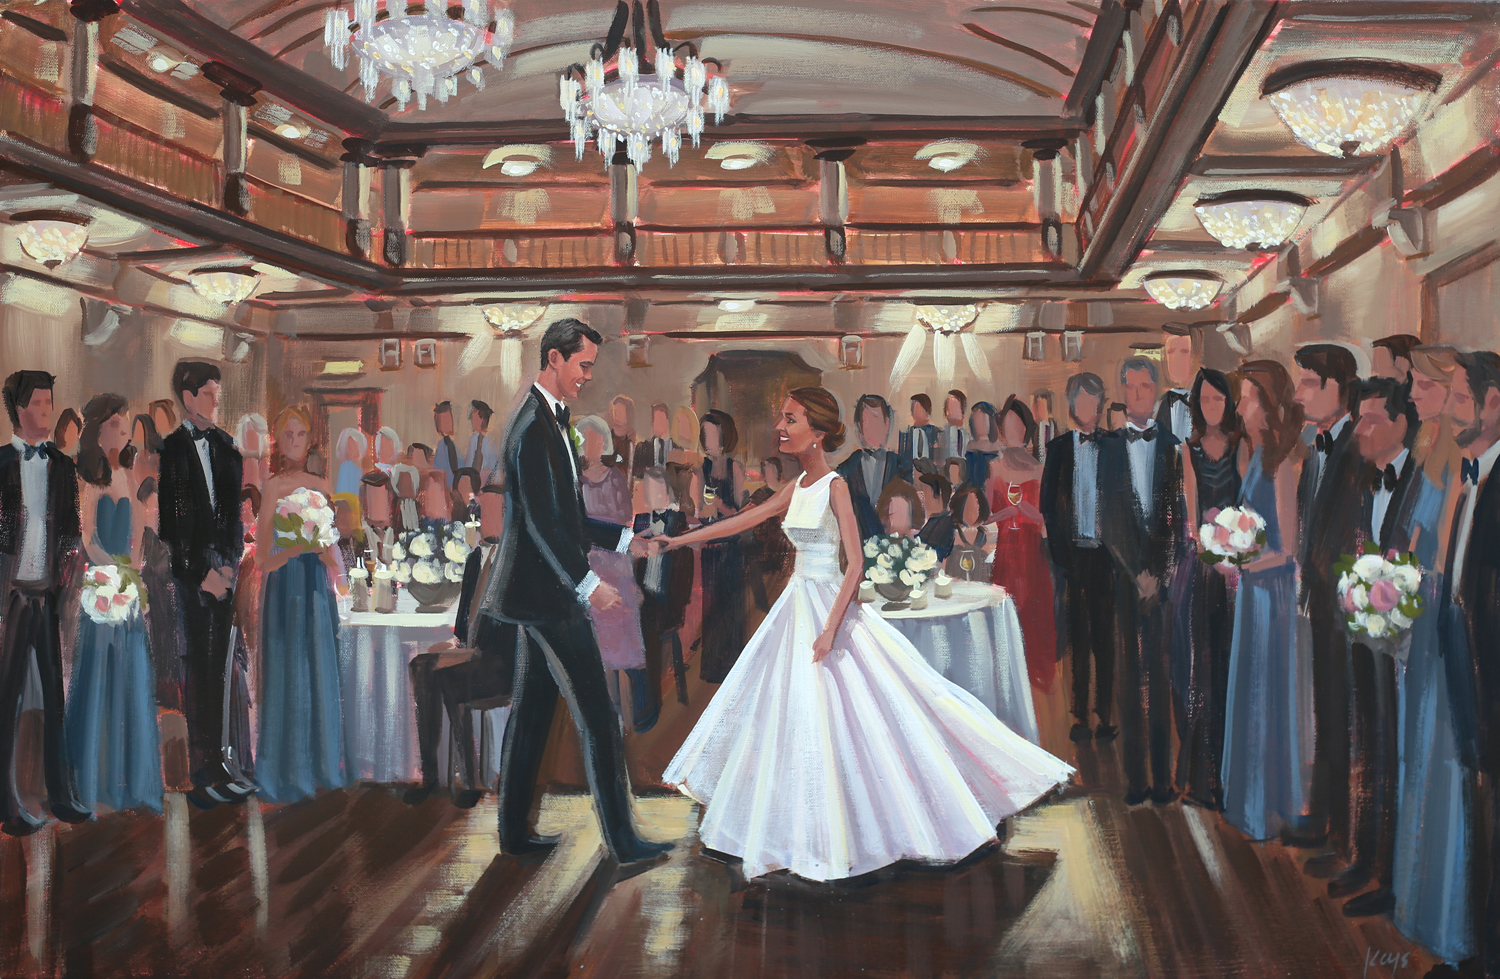 Live wedding painter, Ben Keys, captured Heather + Jake's dreamy first dance at historic Richmond's John Marshall Ballrooms.